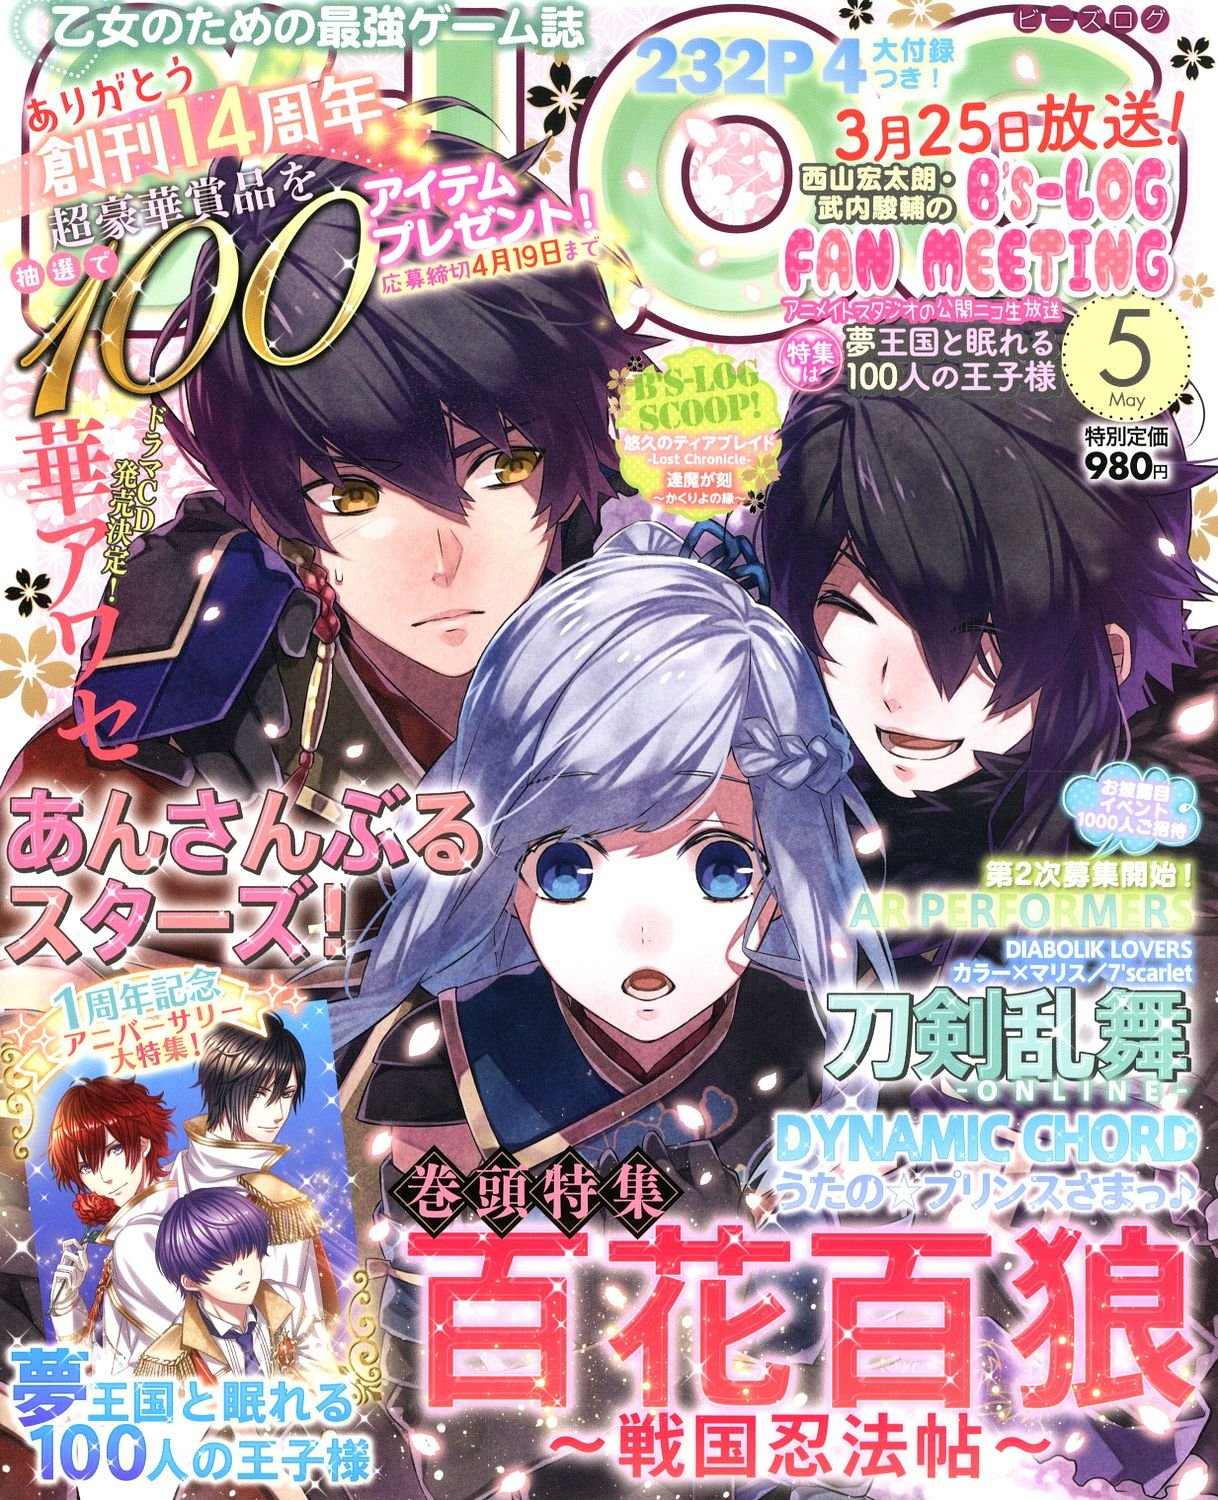 B's-LOG Issue 156 (May 2016)